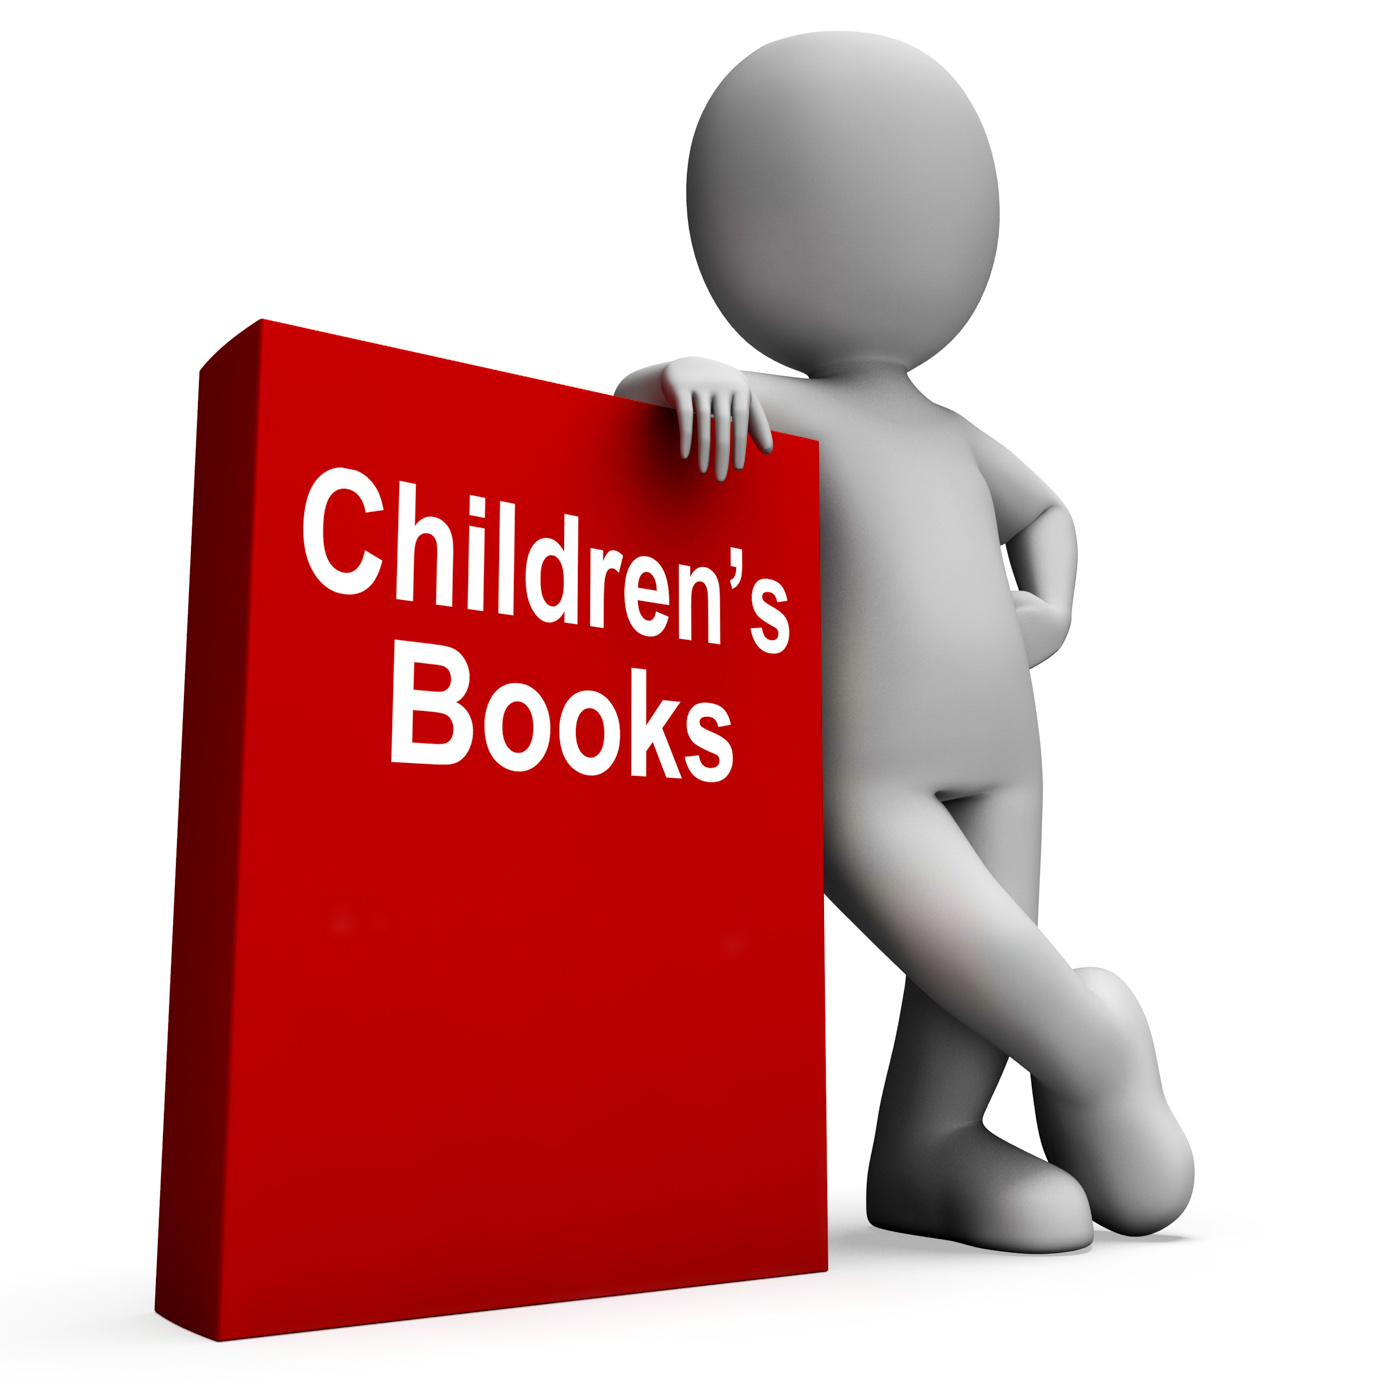 Childrens book and character shows reading for kids photo